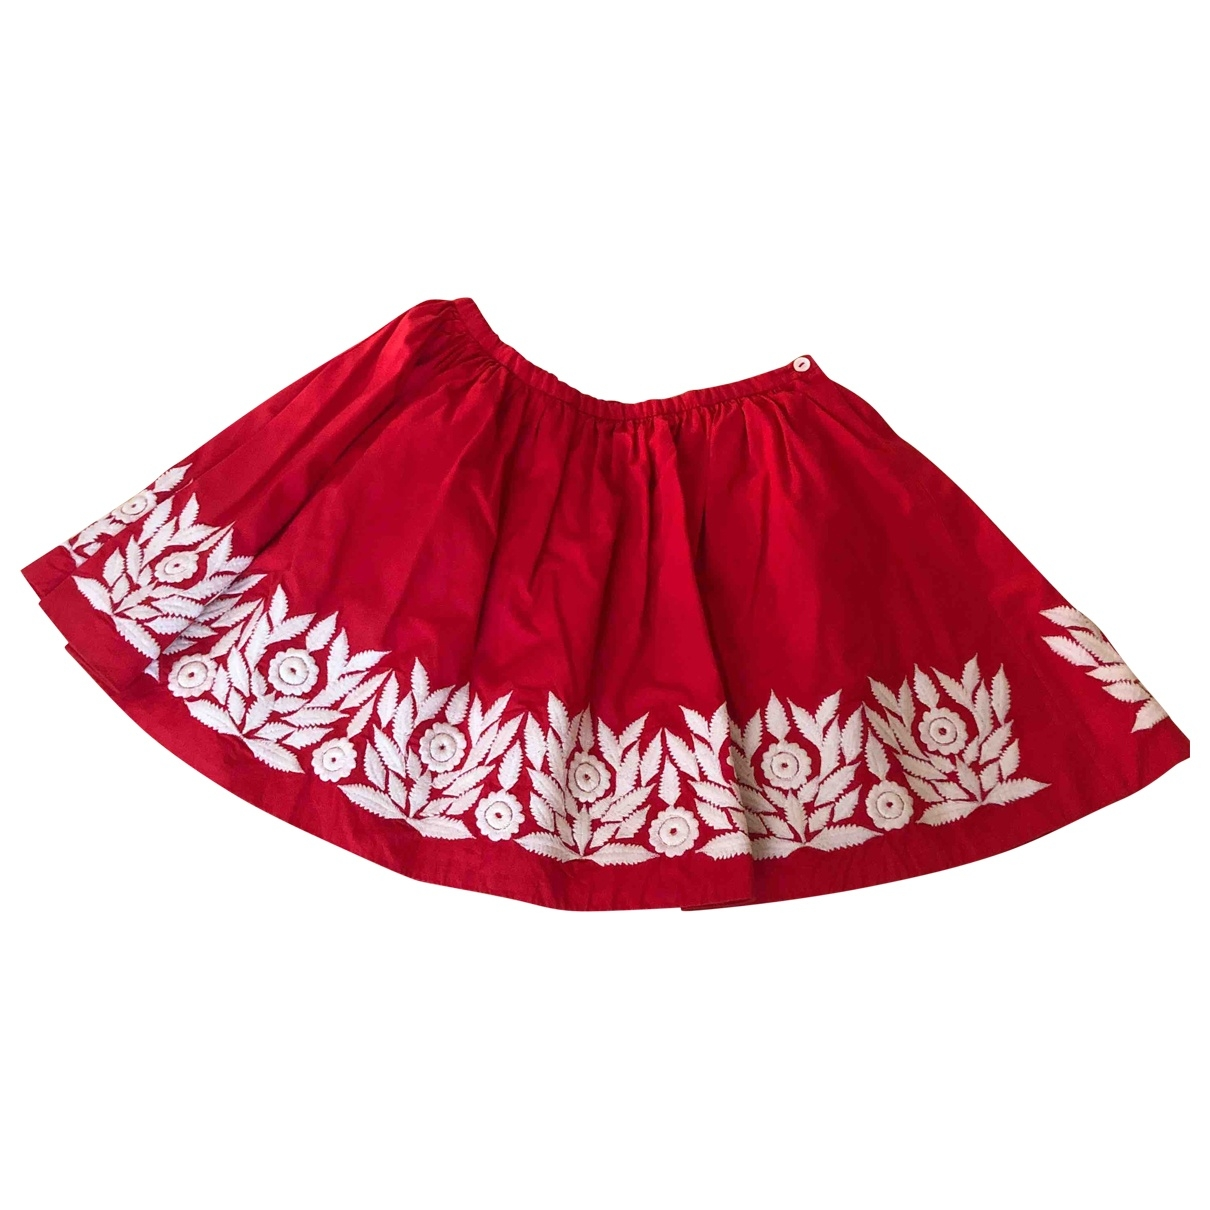 Bonpoint \N Red Cotton skirt for Kids 4 years - up to 102cm FR